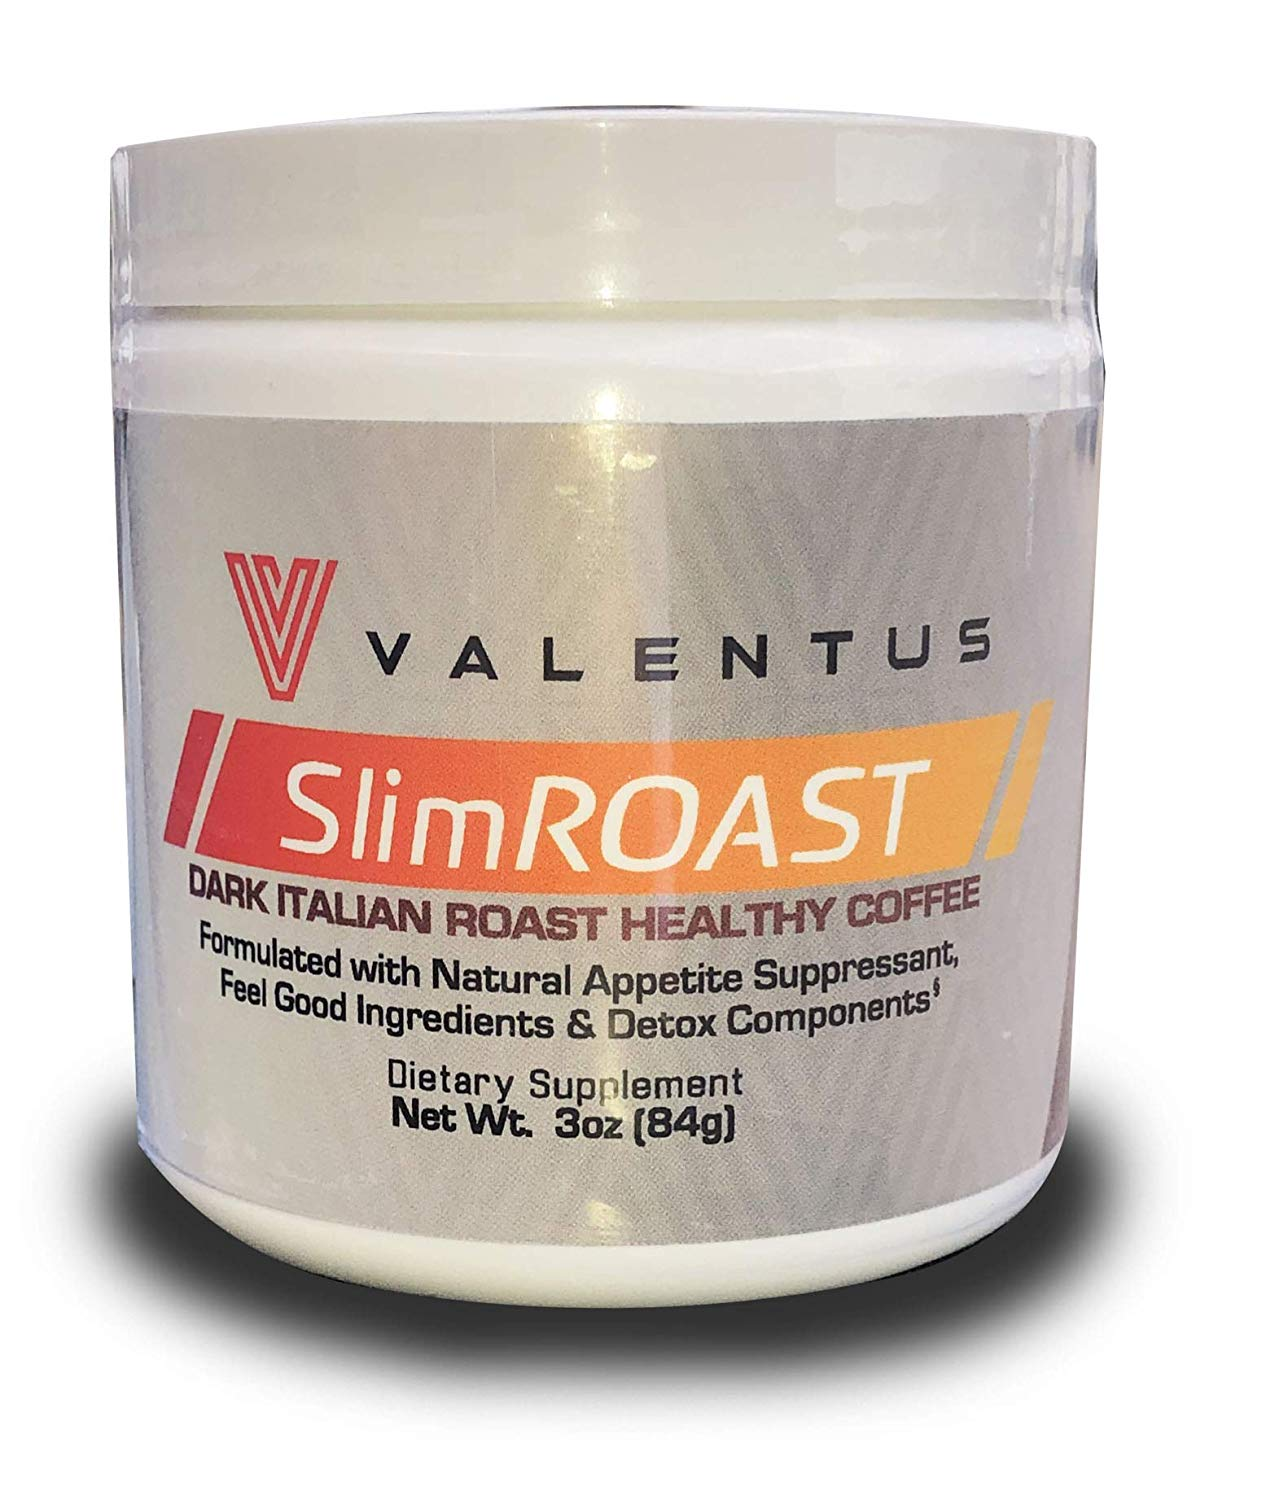 VALENTUS Slim Roast - Italian Dark Roast Coffee 3 Oz. Canister (24 Servings)